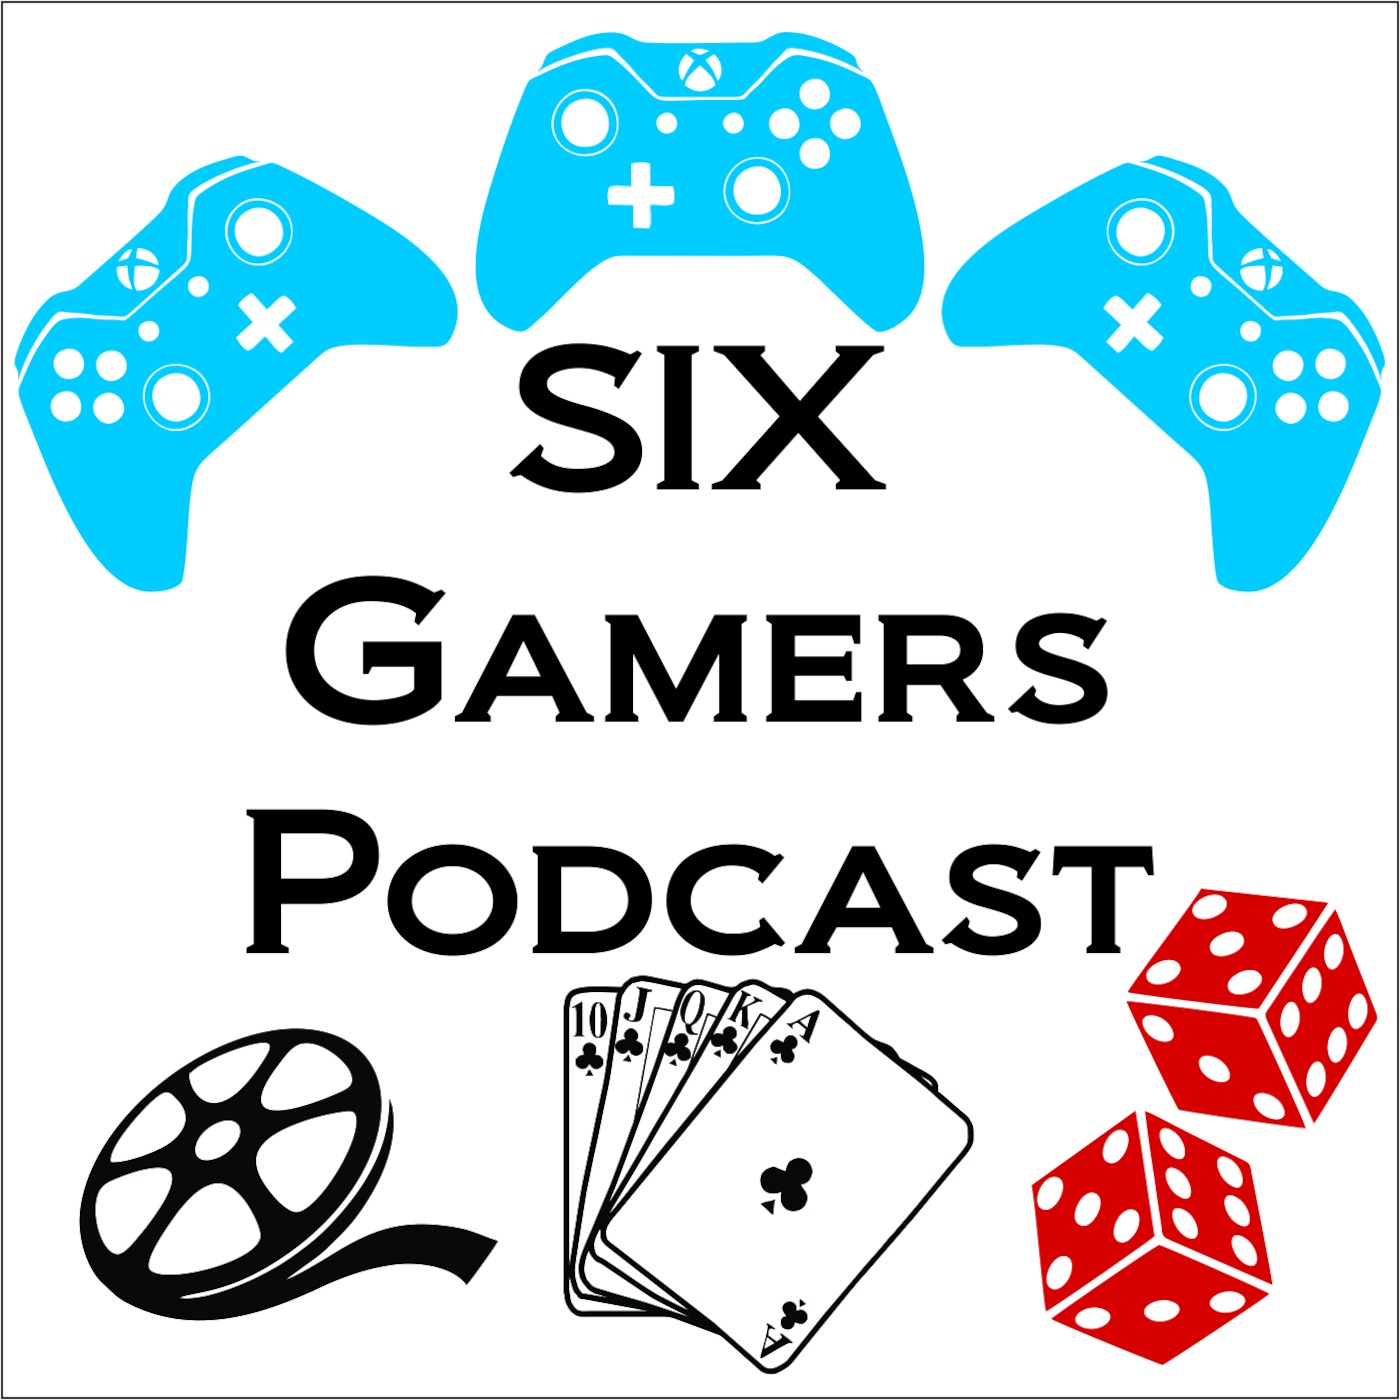 Six Gamers Podcast